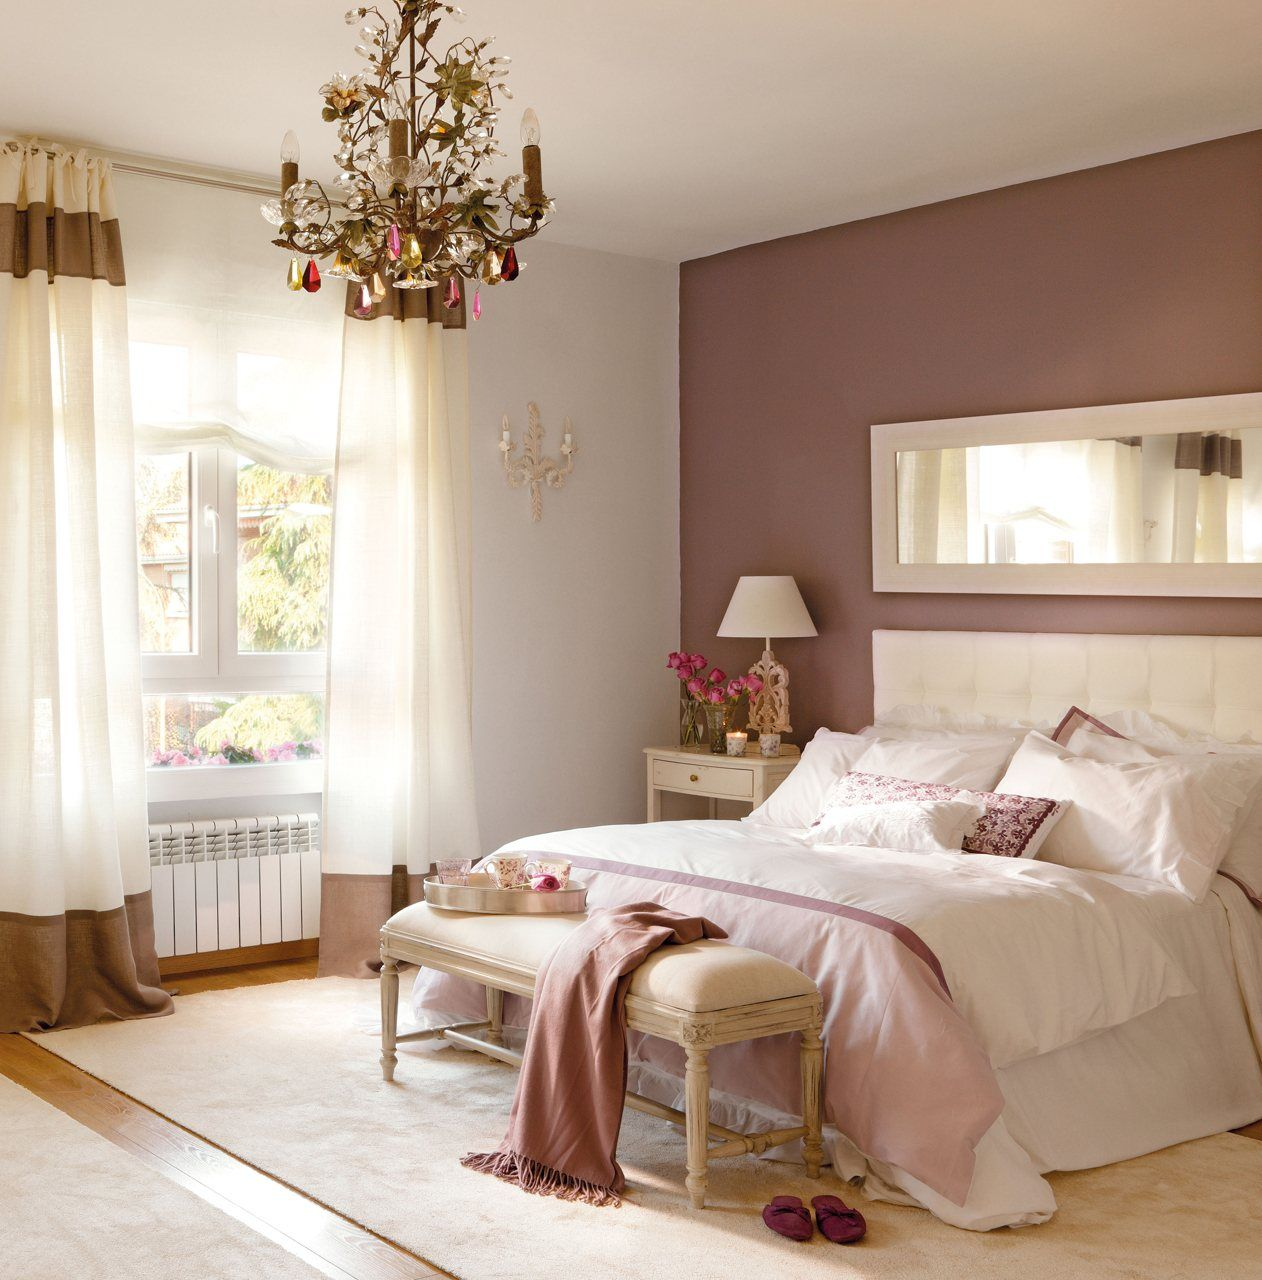 10 falsos mitos c mo decorar sin errores bedrooms room for Matrimonial bedroom design